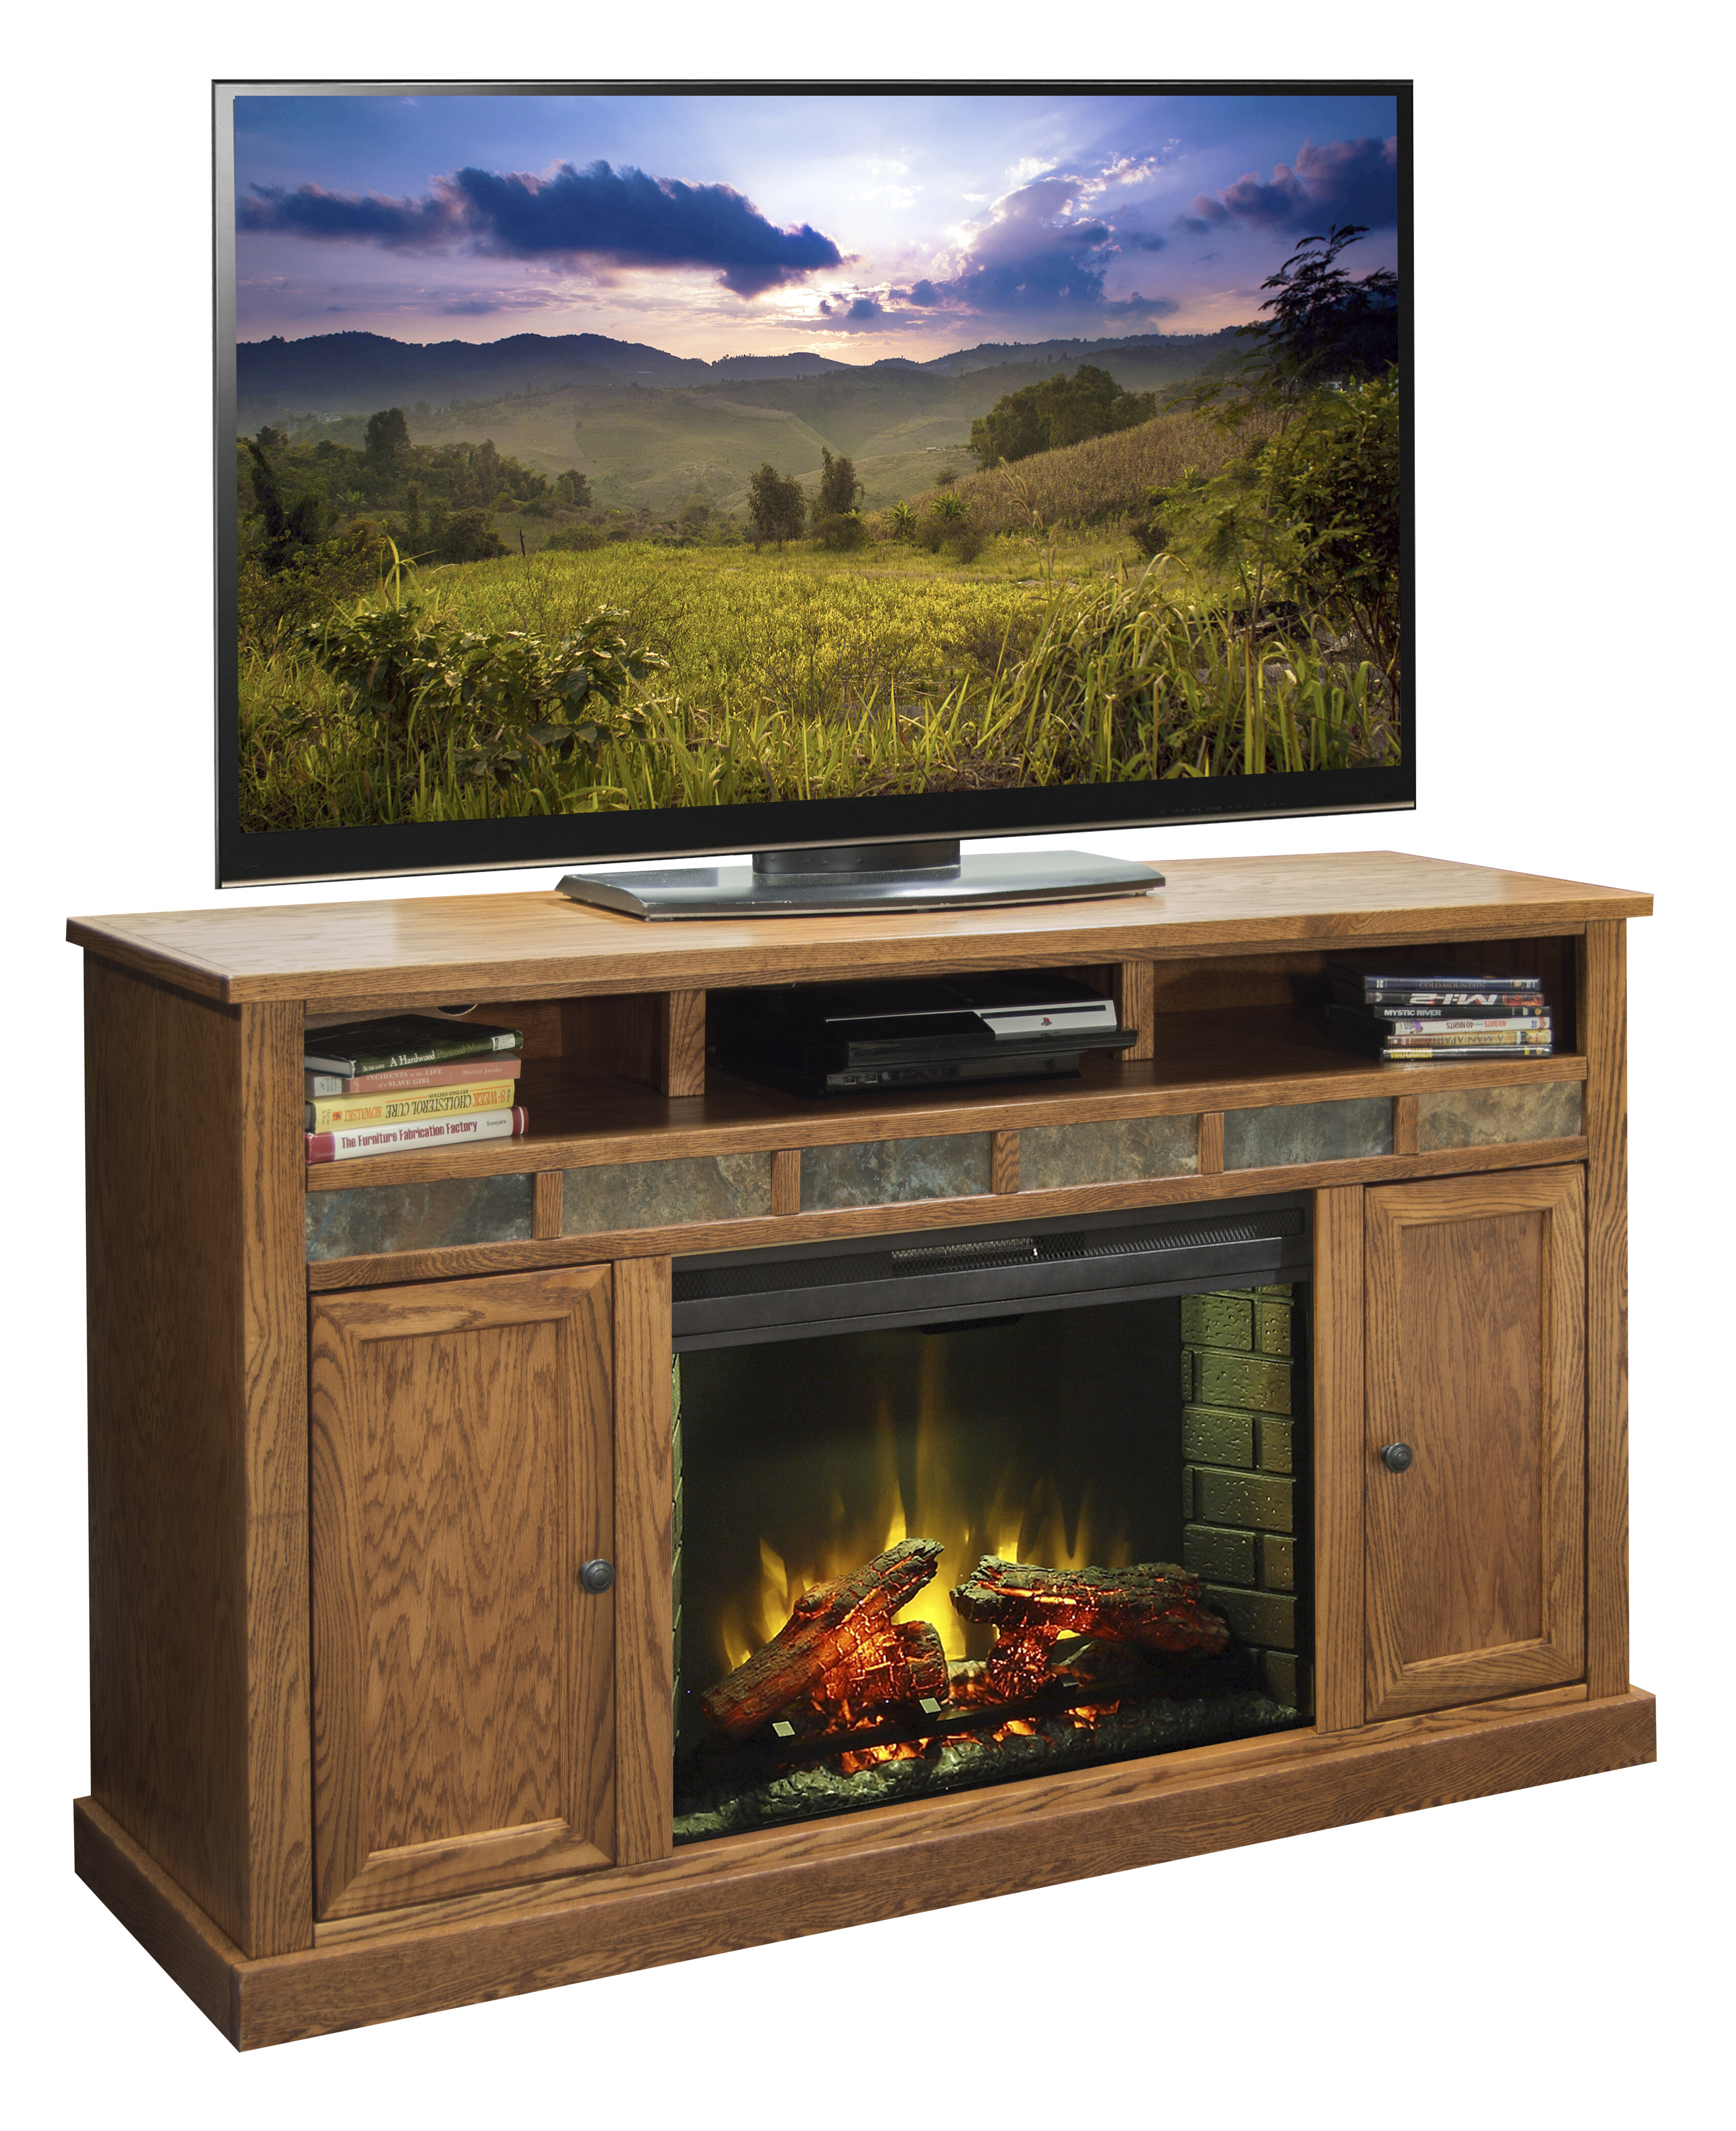 Lovely Tv Cabinet with Electric Fireplace